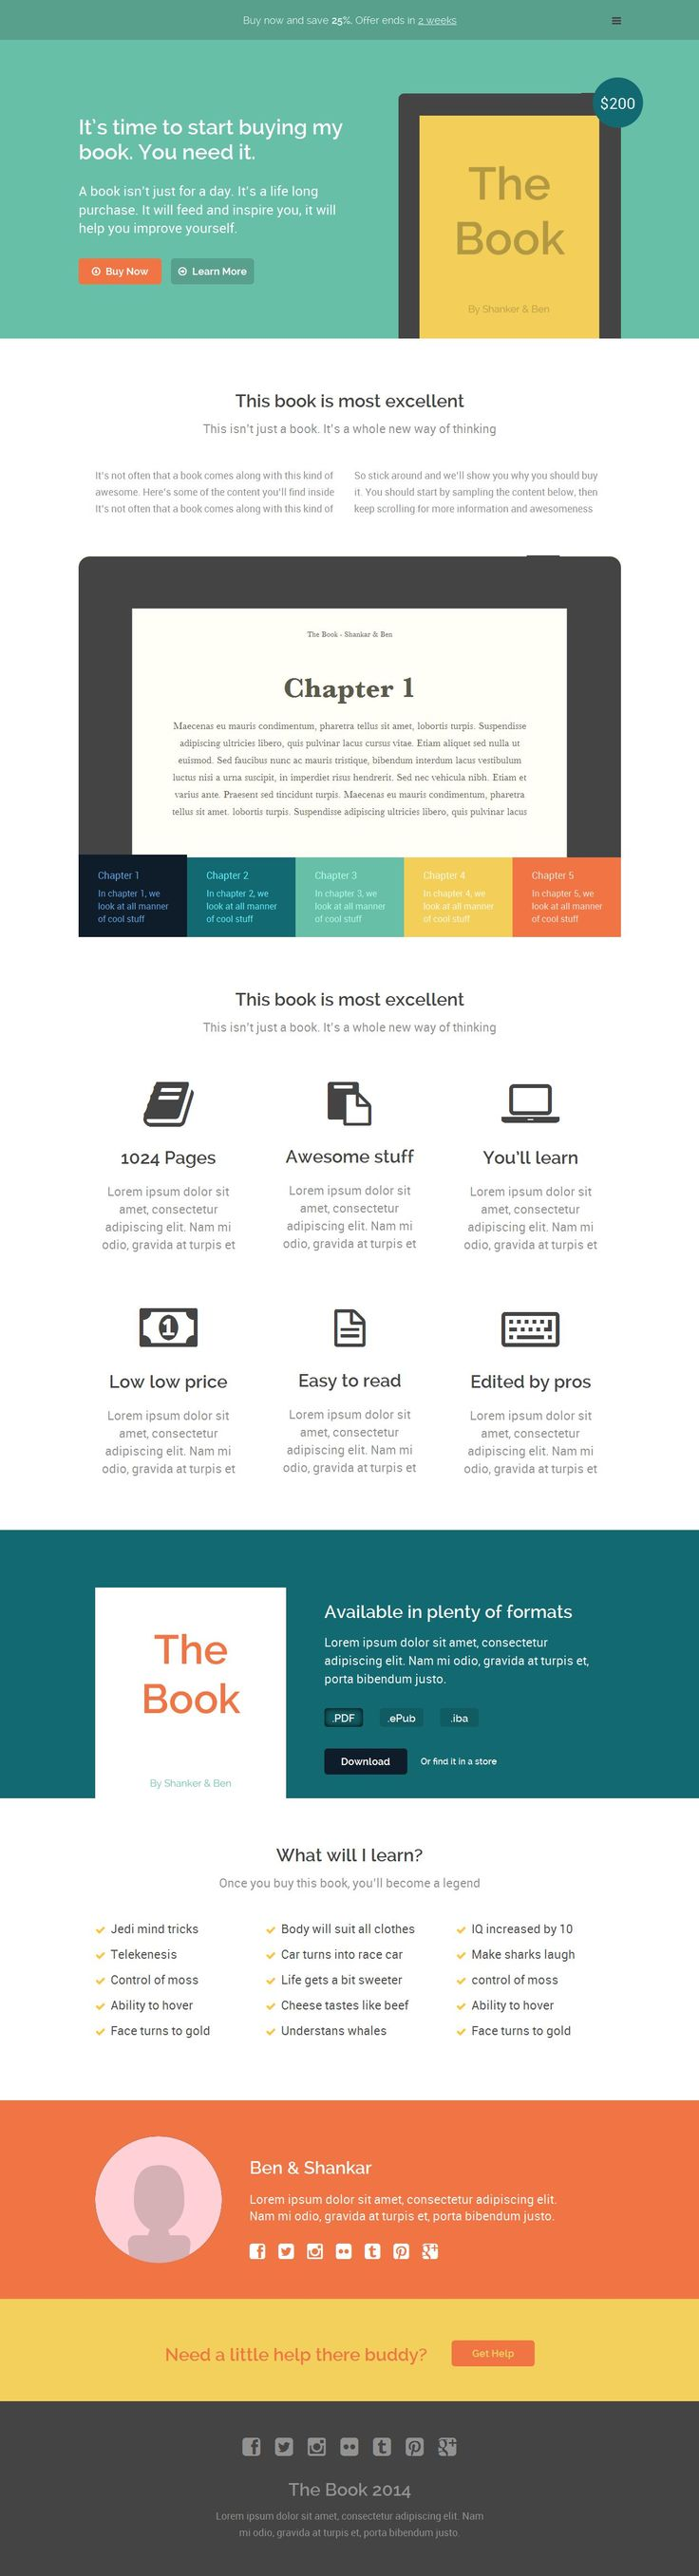 48 best images about Landing Page Templates on Pinterest